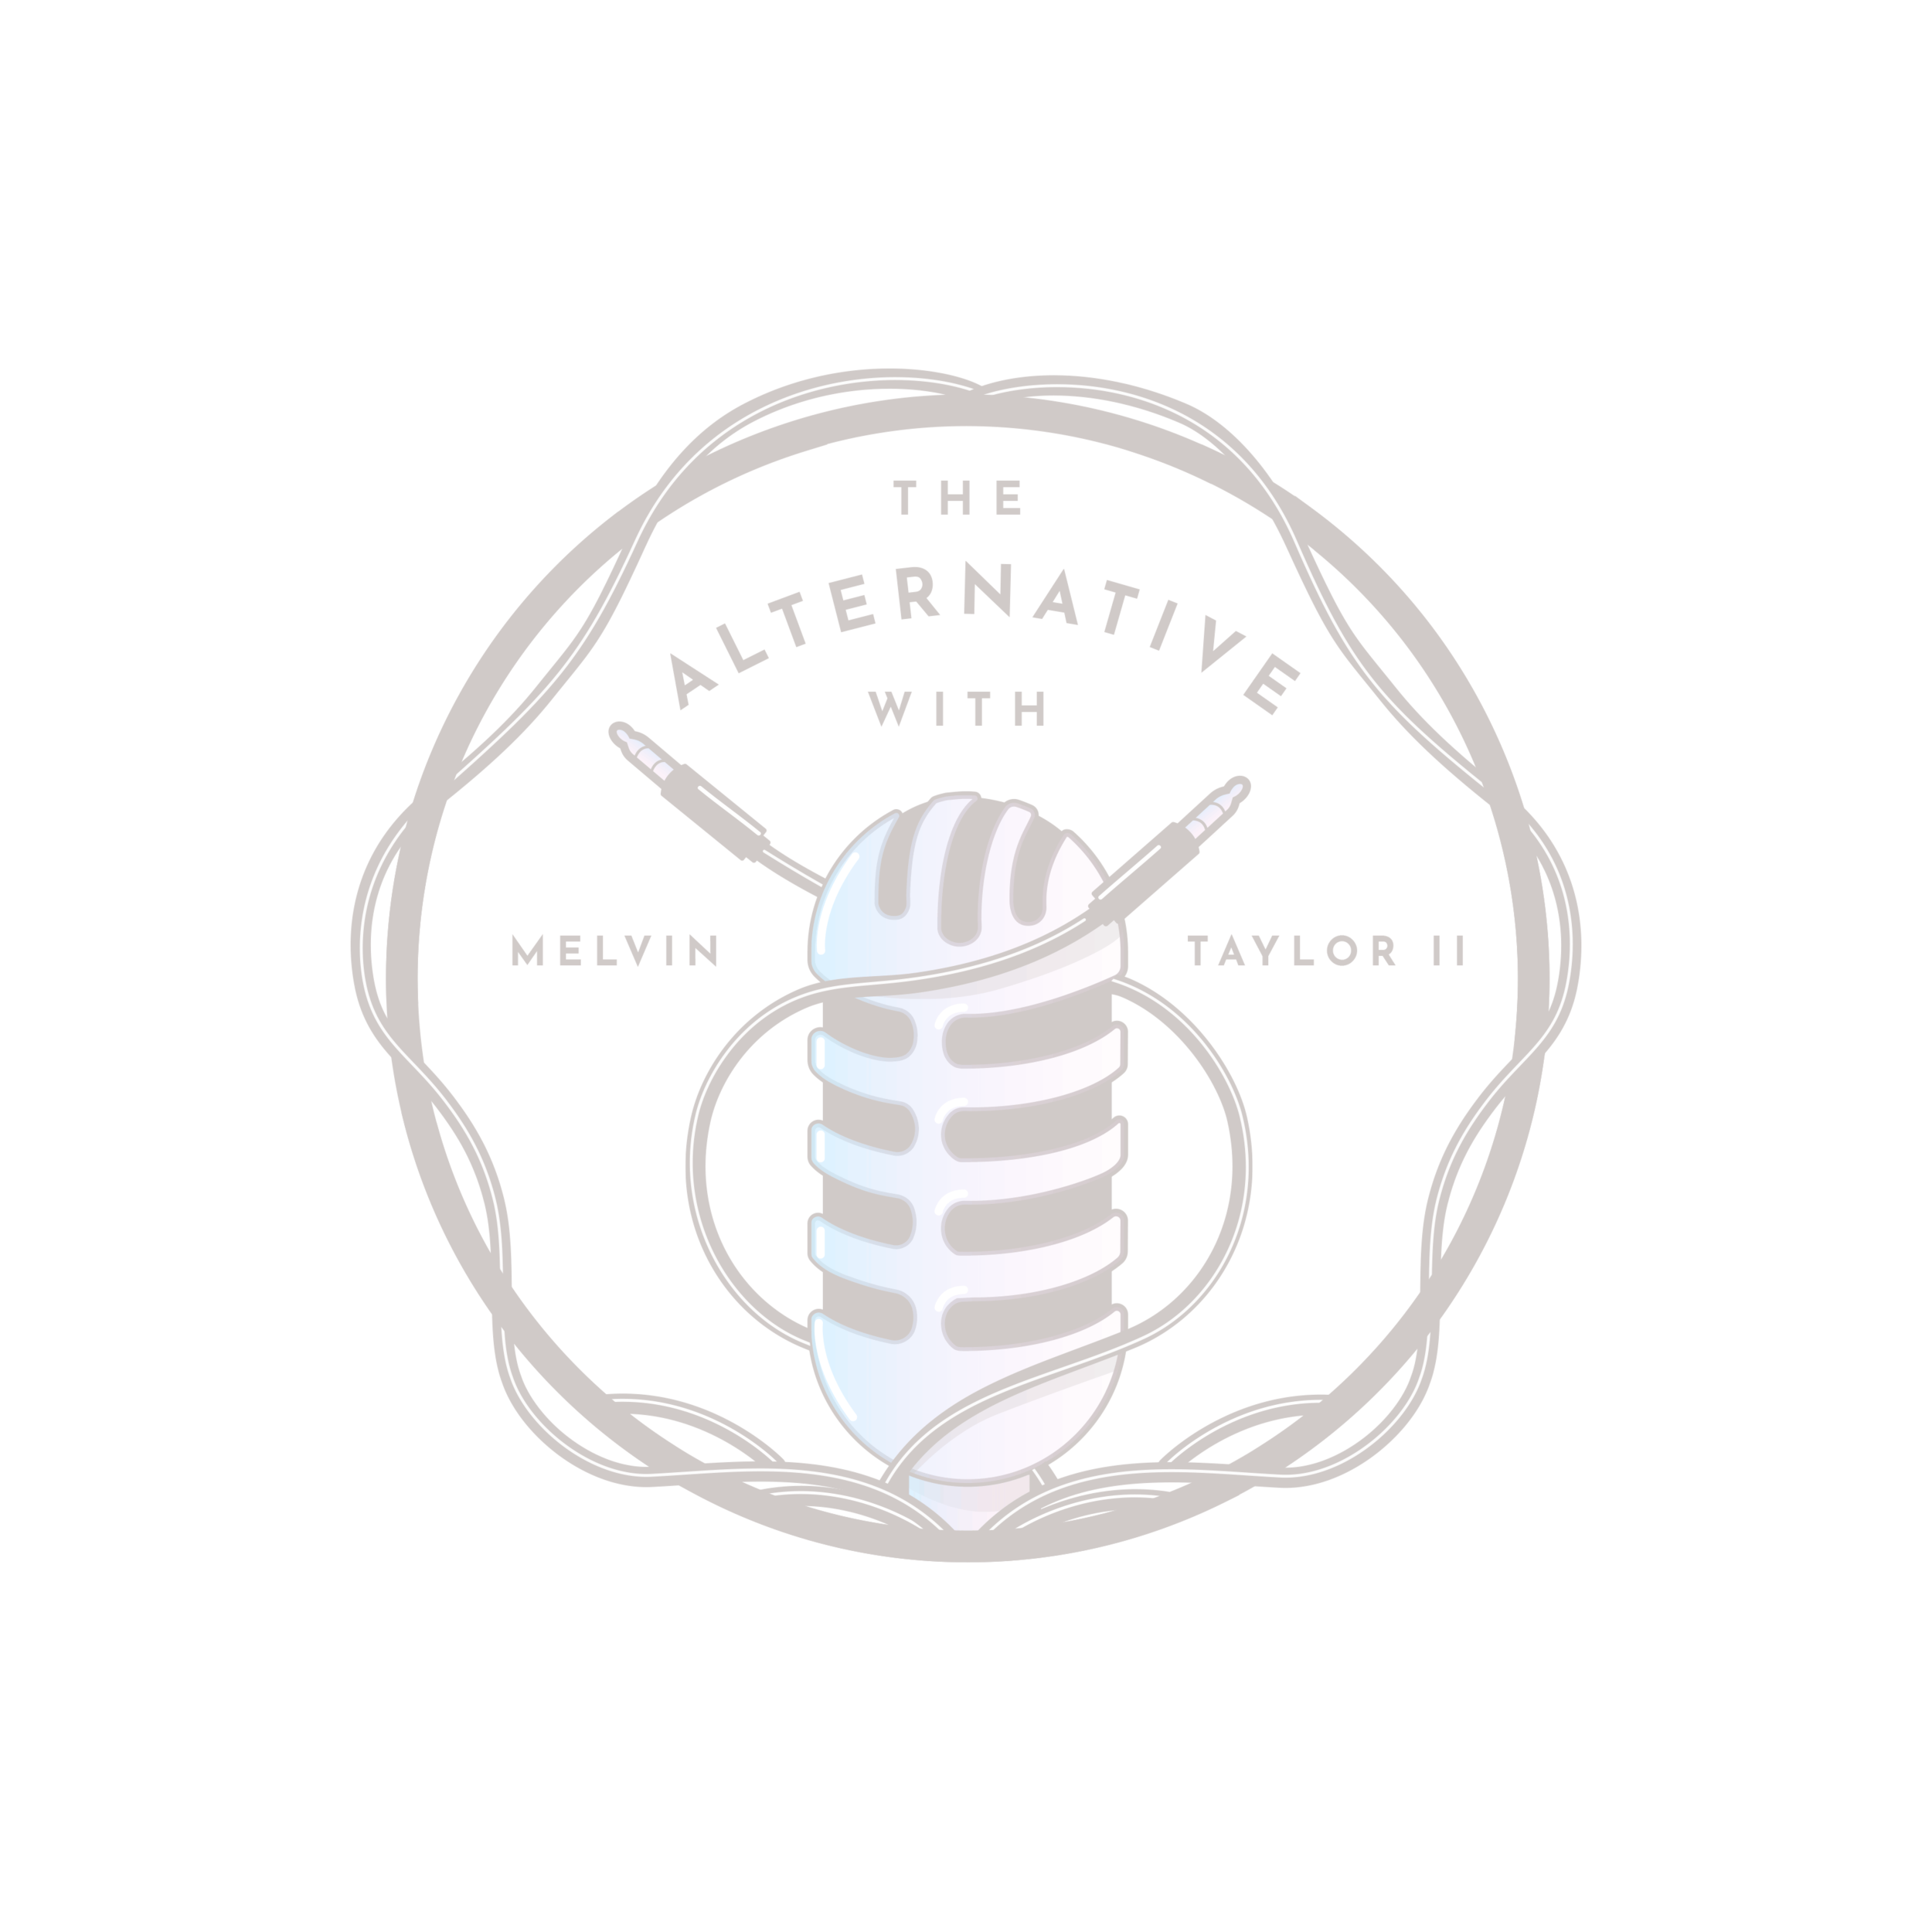 The-Alternative_Logo_grey.png